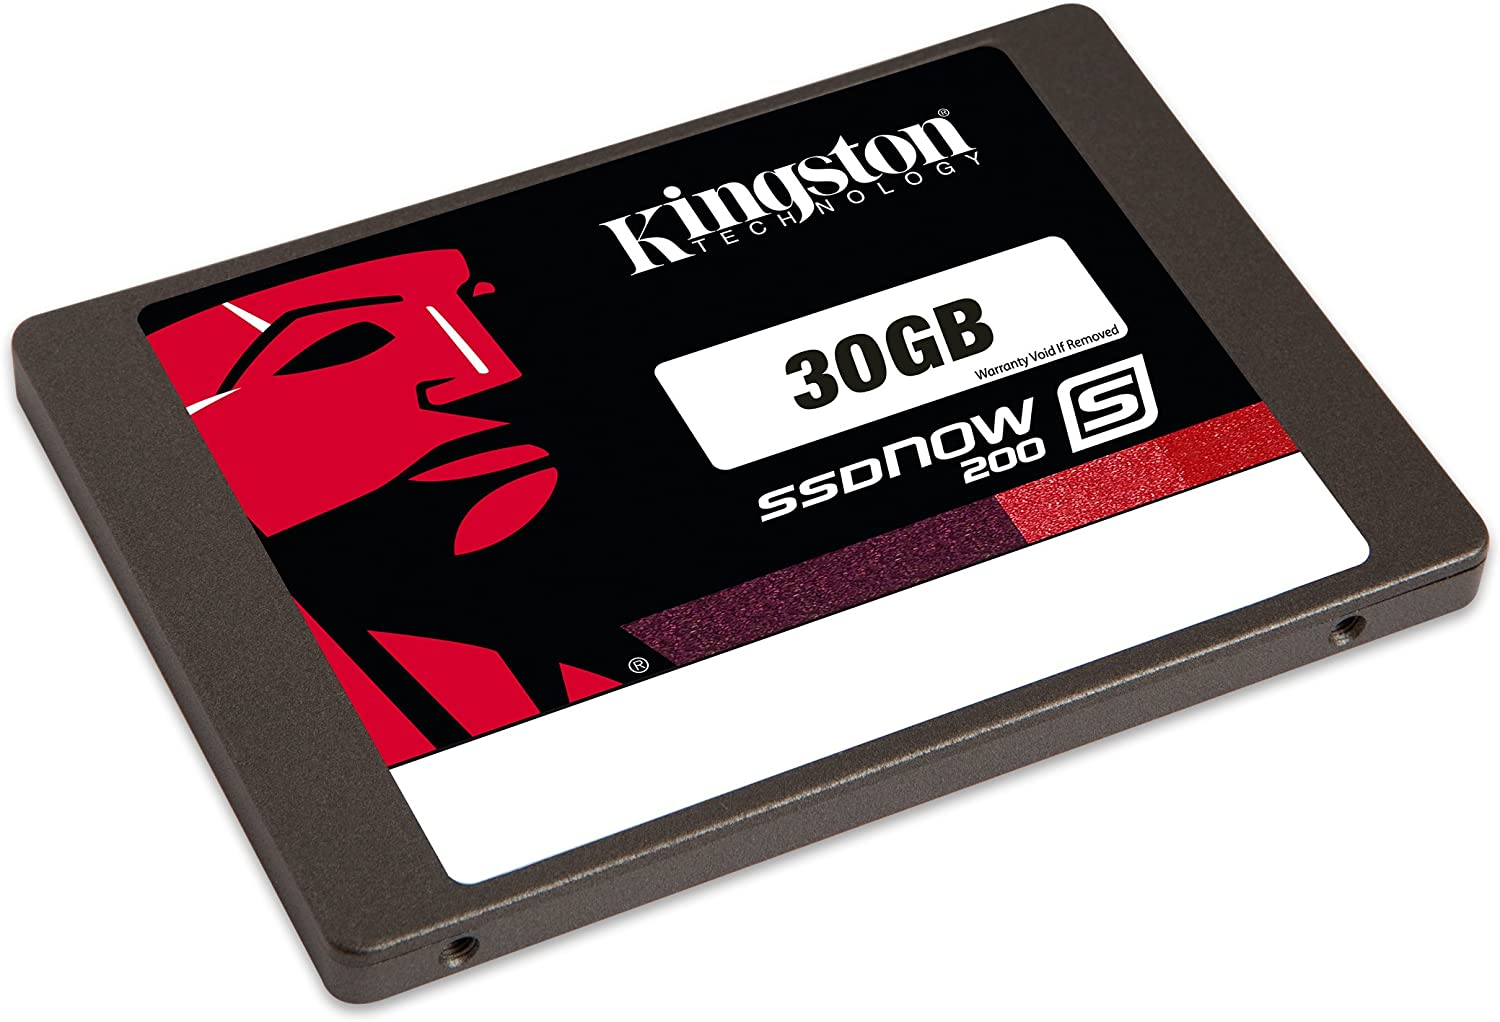 Kingston SSDNow S200 30GB - Disco Duro sólido Interno SSD de 30 GB ...